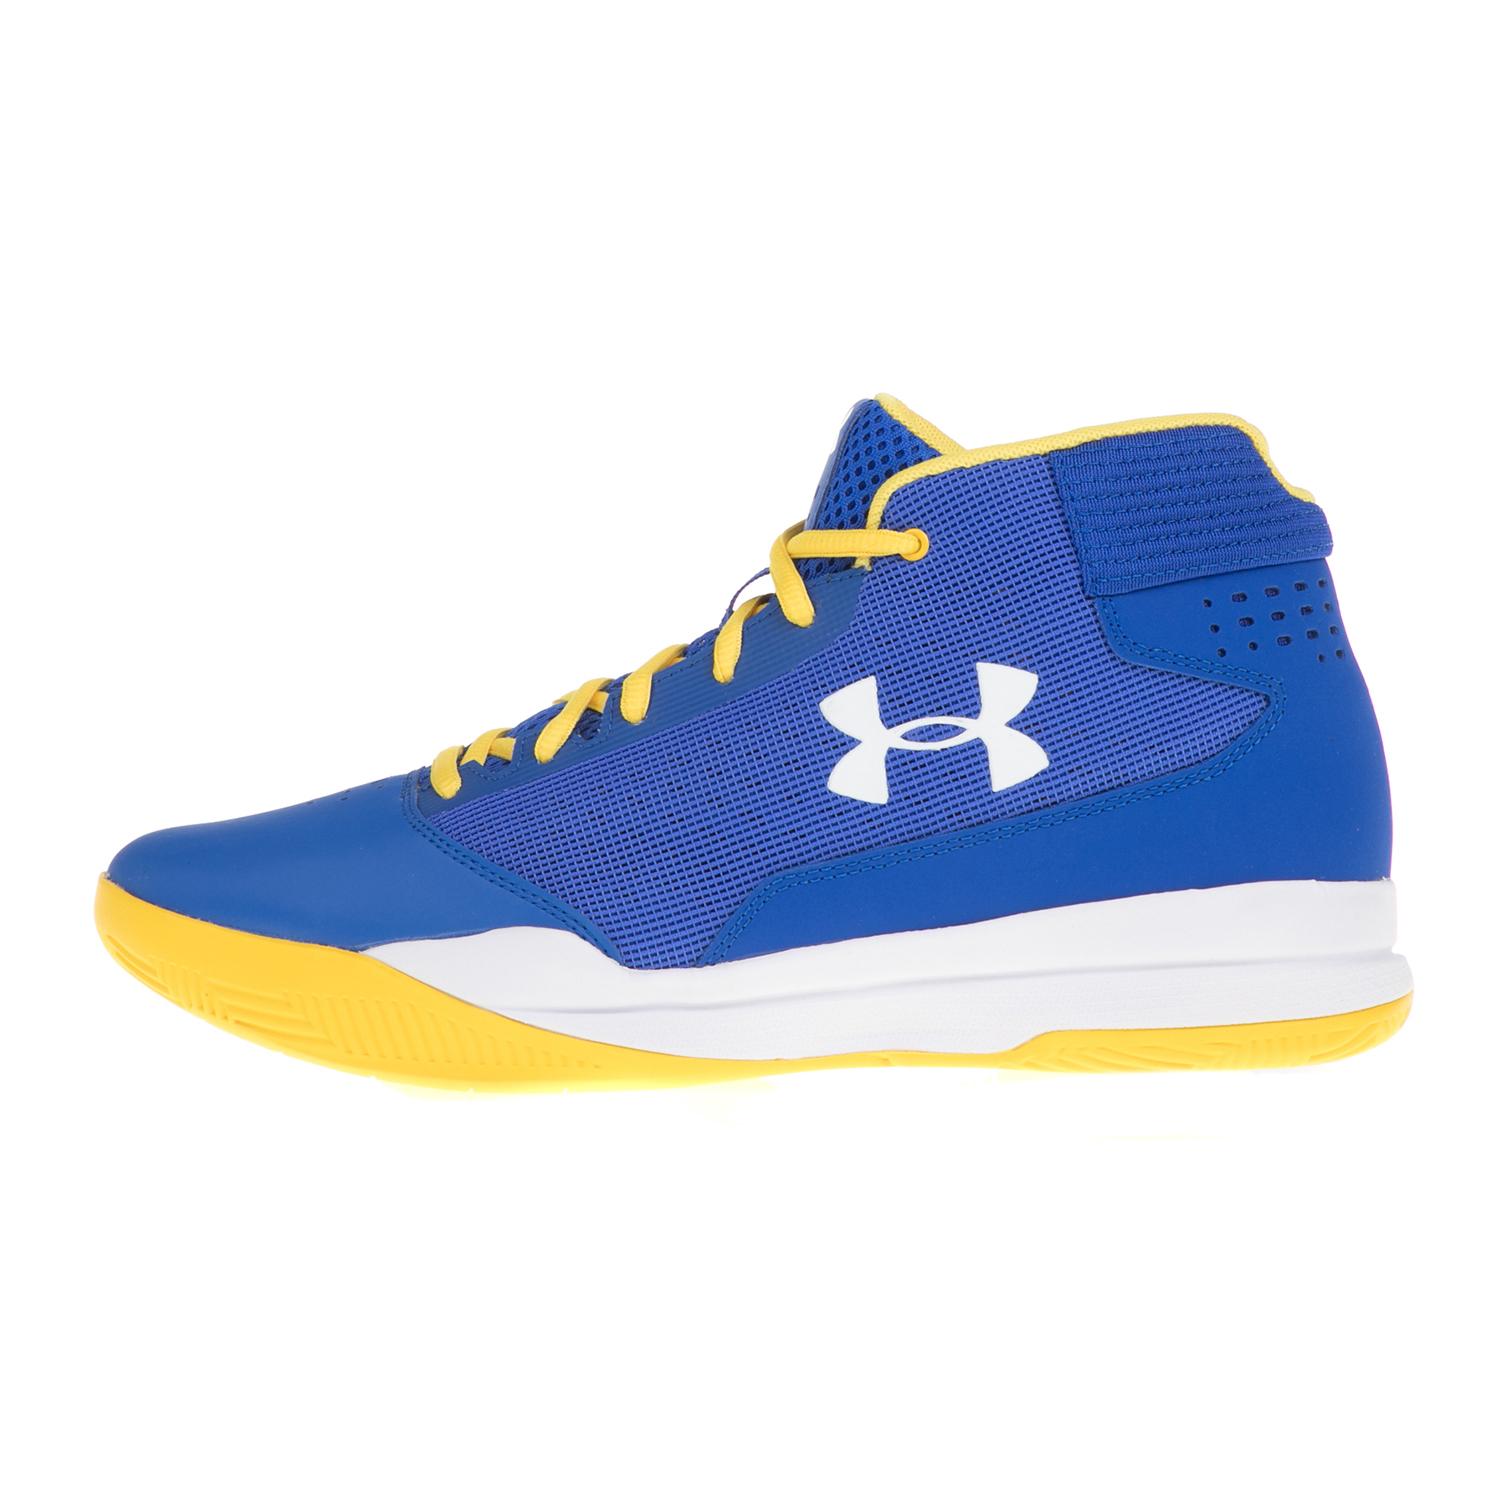 f5c12546248 -40% Factory Outlet UNDER ARMOUR – Ανδρικά παπούτσια μπάσκετ UA JET 2017  μπλε